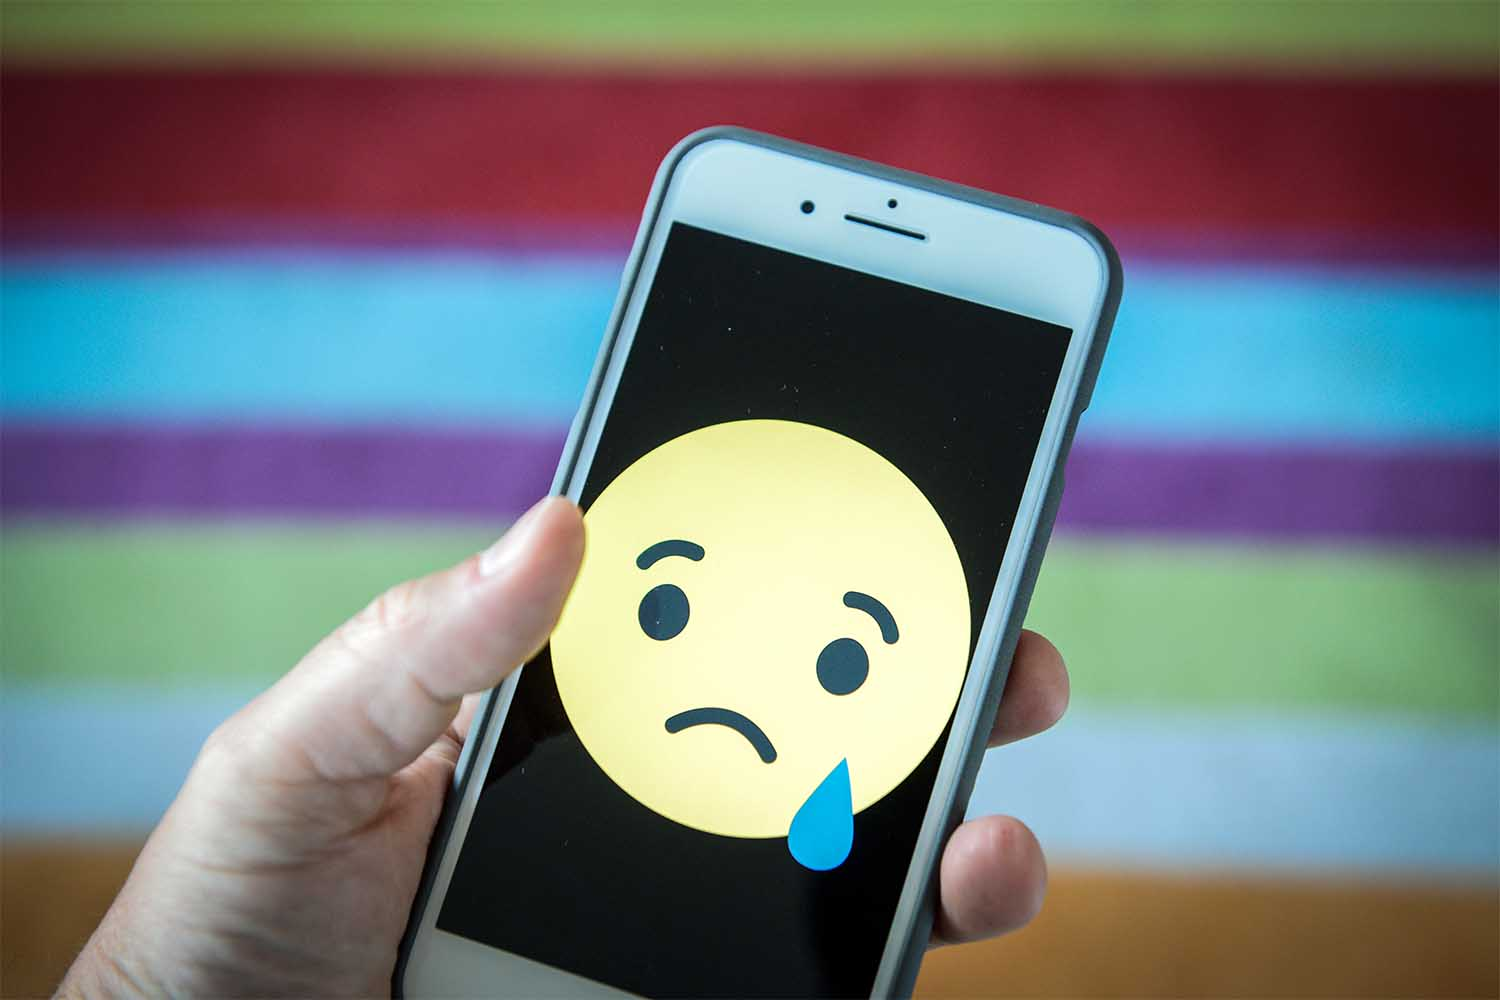 Sad face emoji on a phone